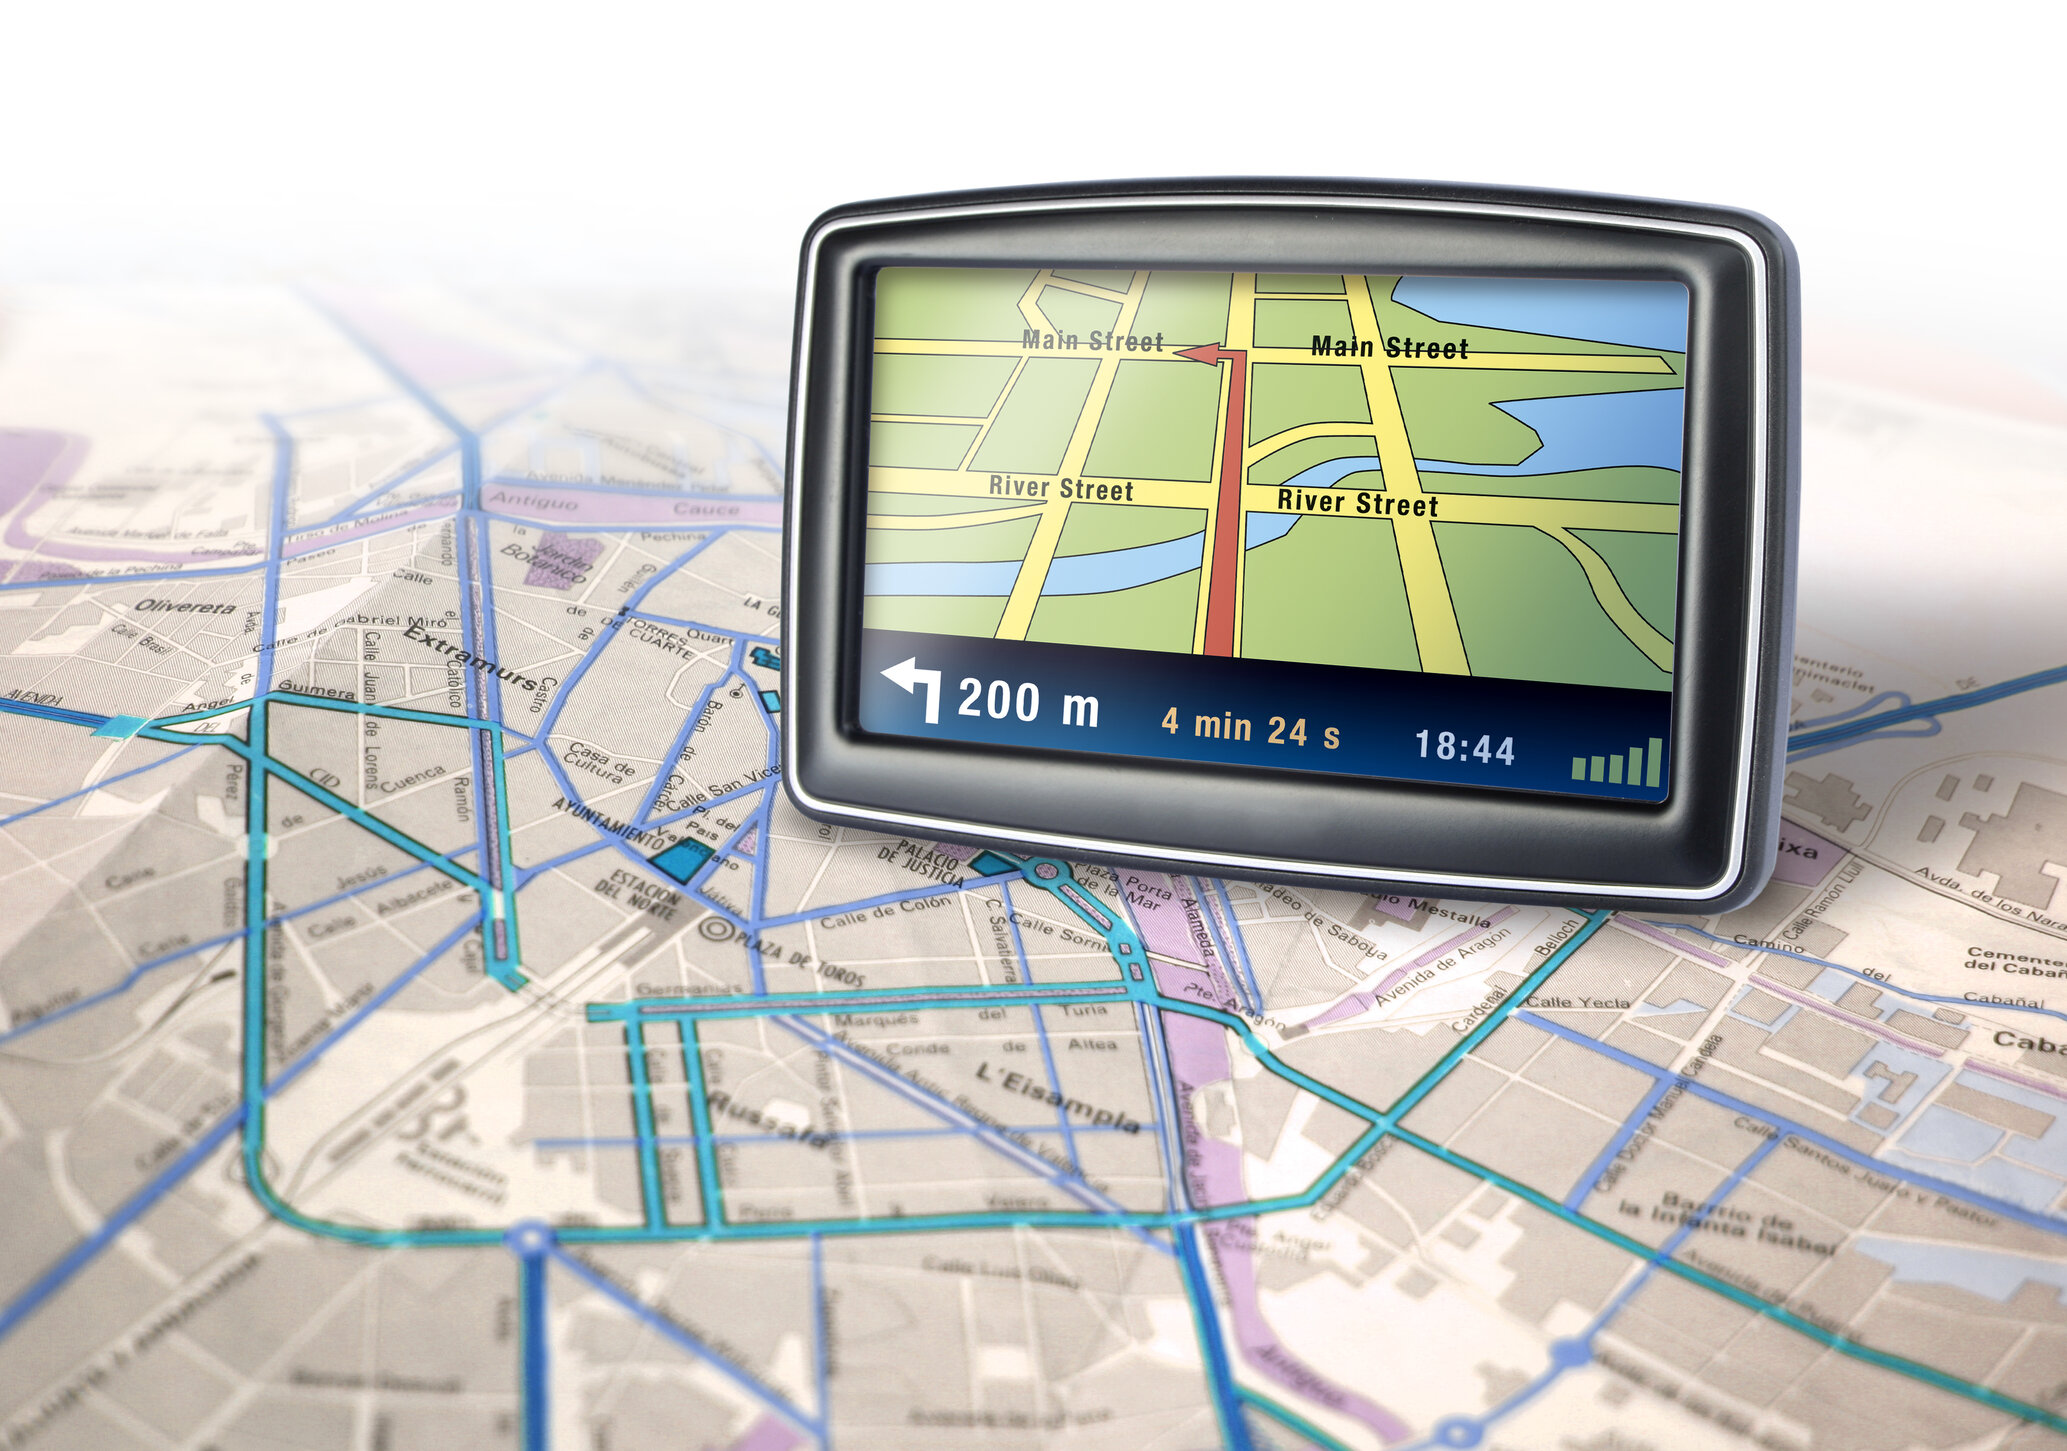 Update your device's software and maps regularly, and have a road atlas and/or traditional paper maps available as a backup or if the GPS malfunctions.